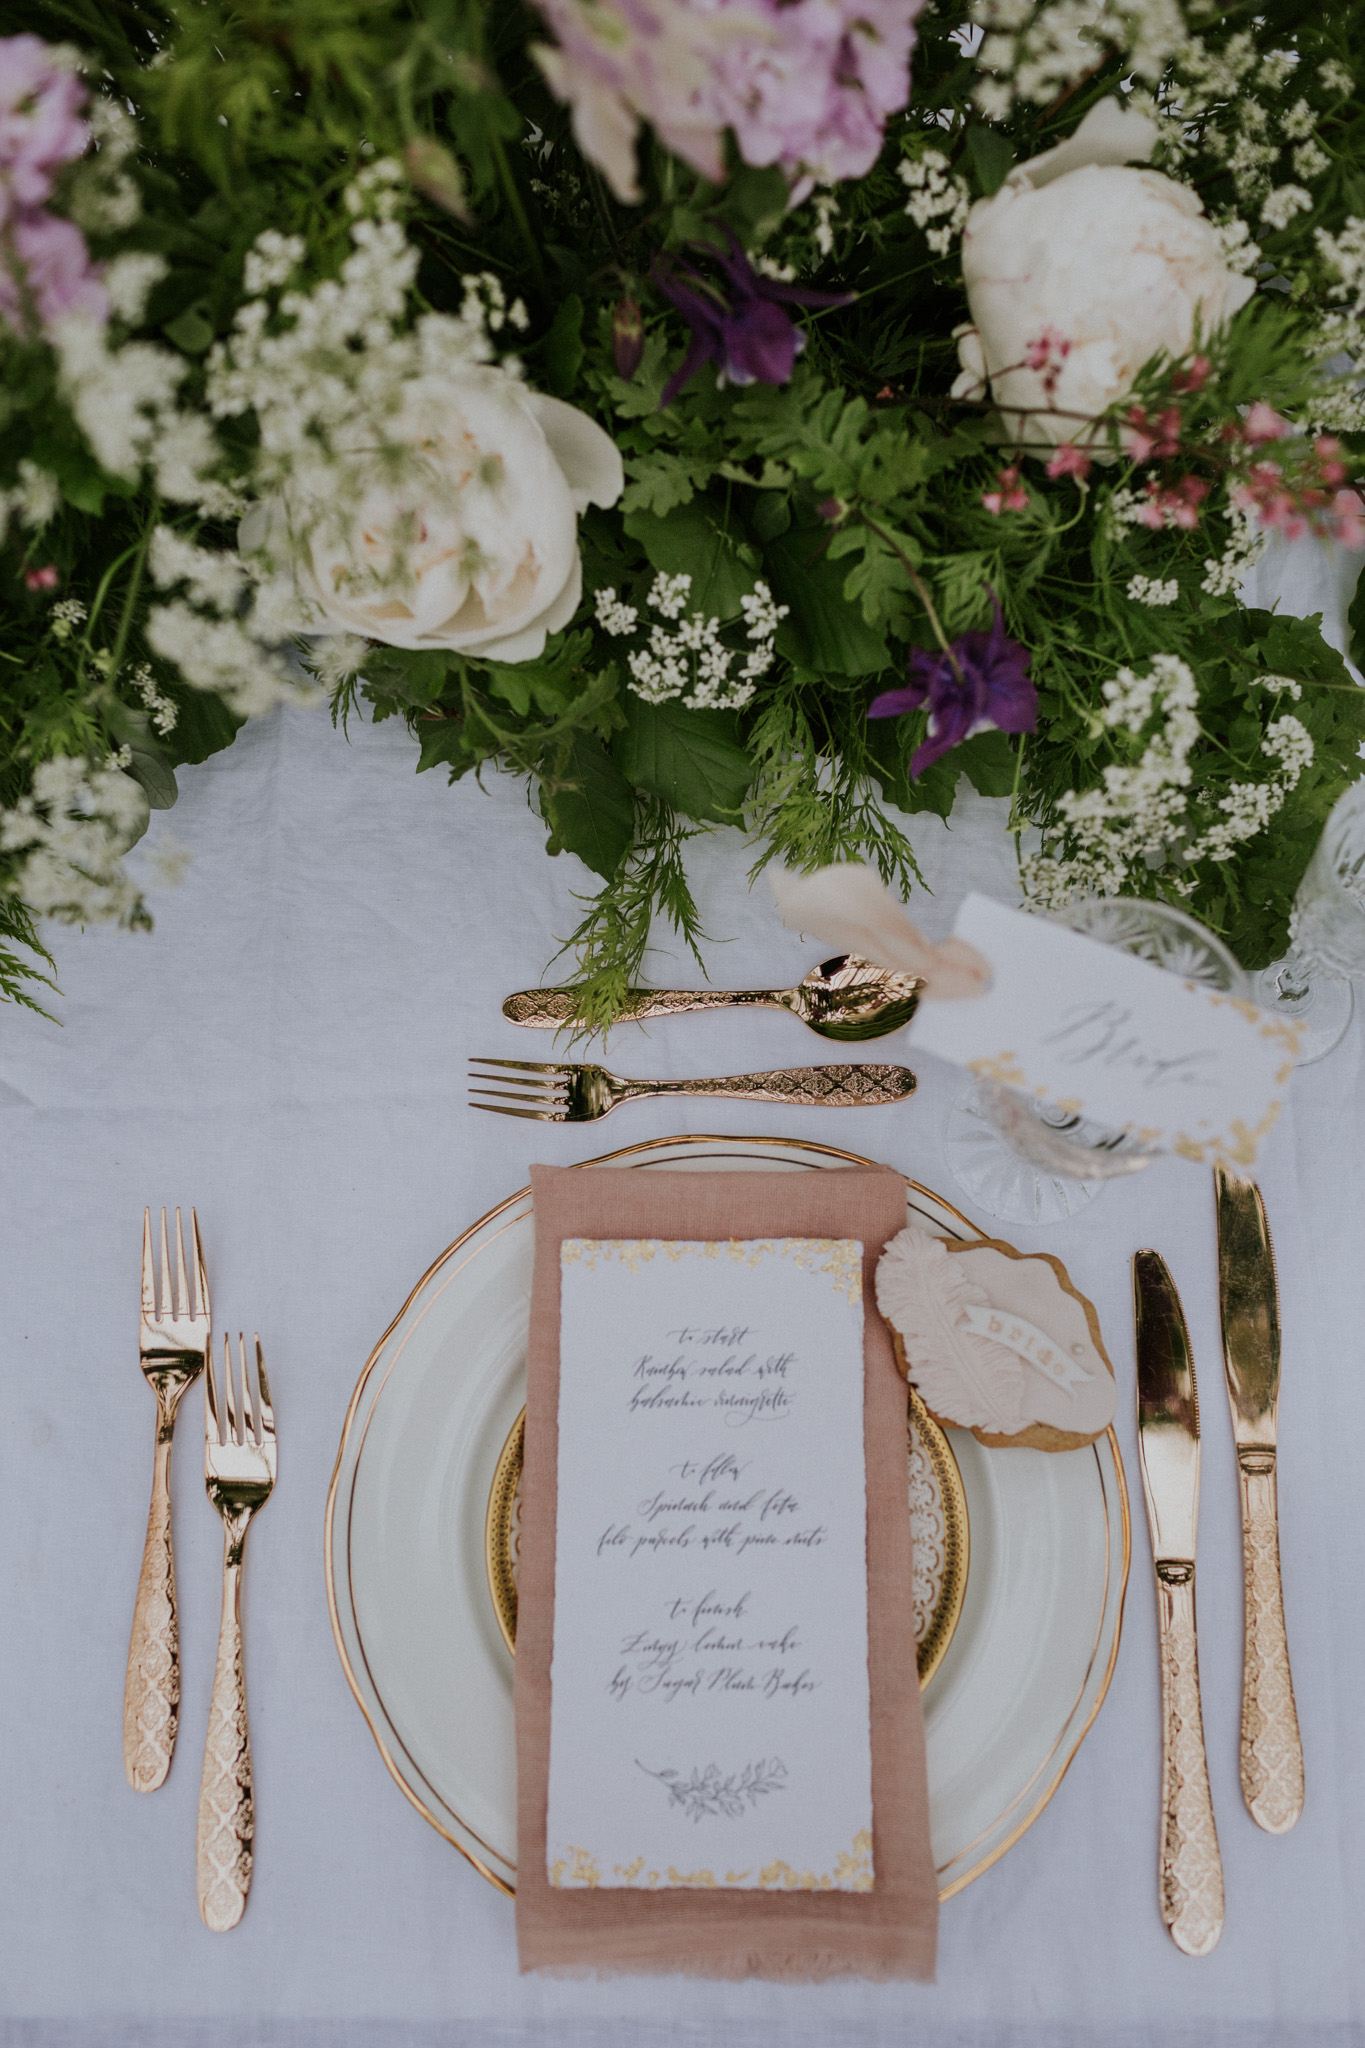 Romantic wedding menu and place card on handmade paper with deckled edges.